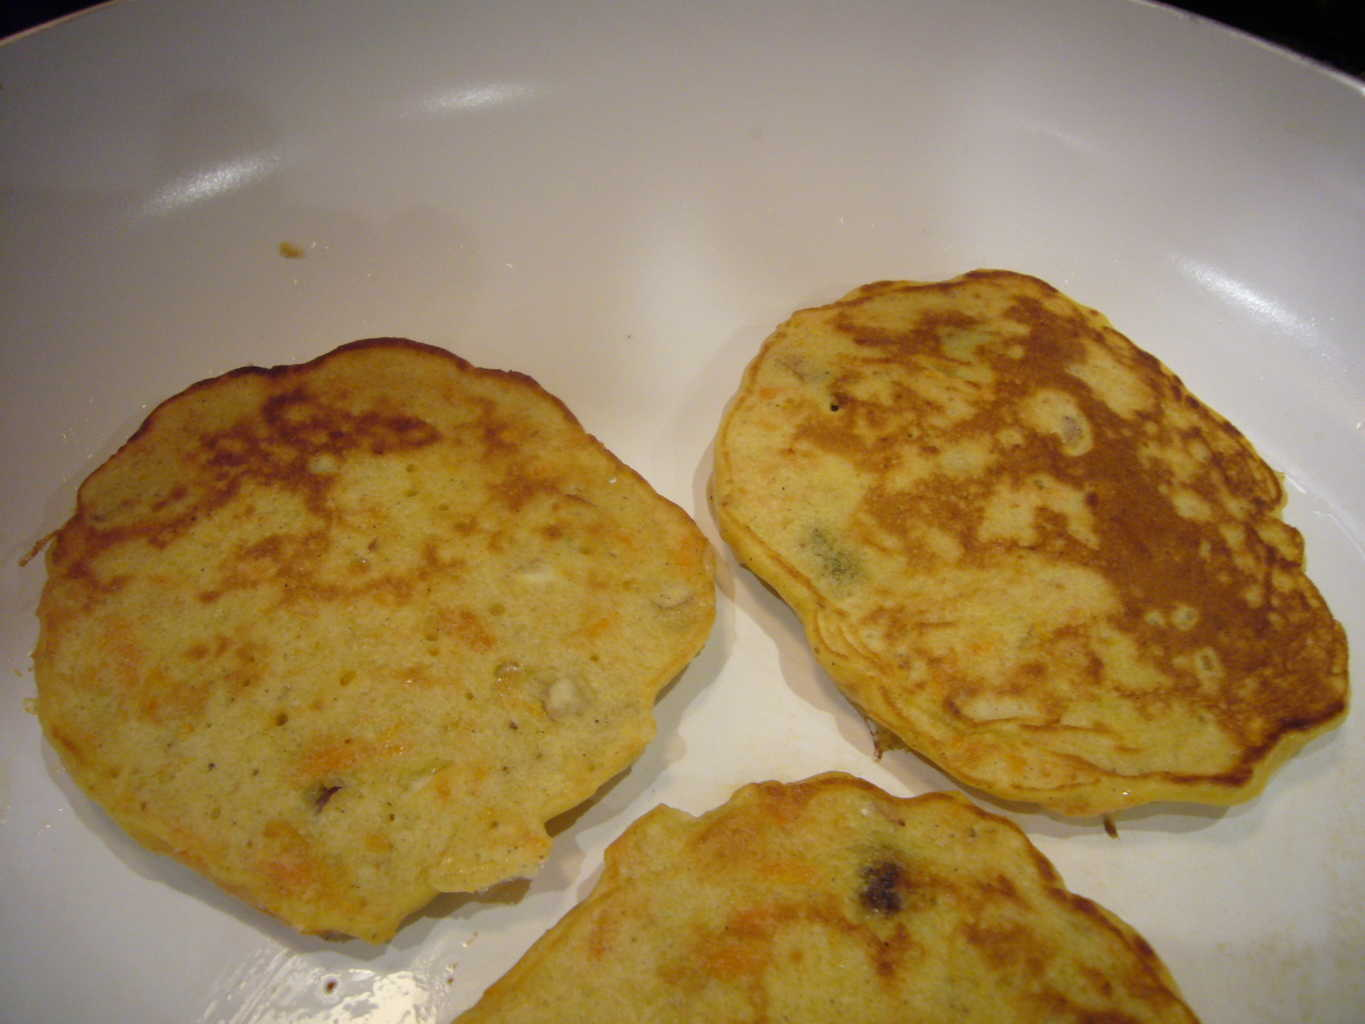 Three carrot pancakes flipped after cooking one side.